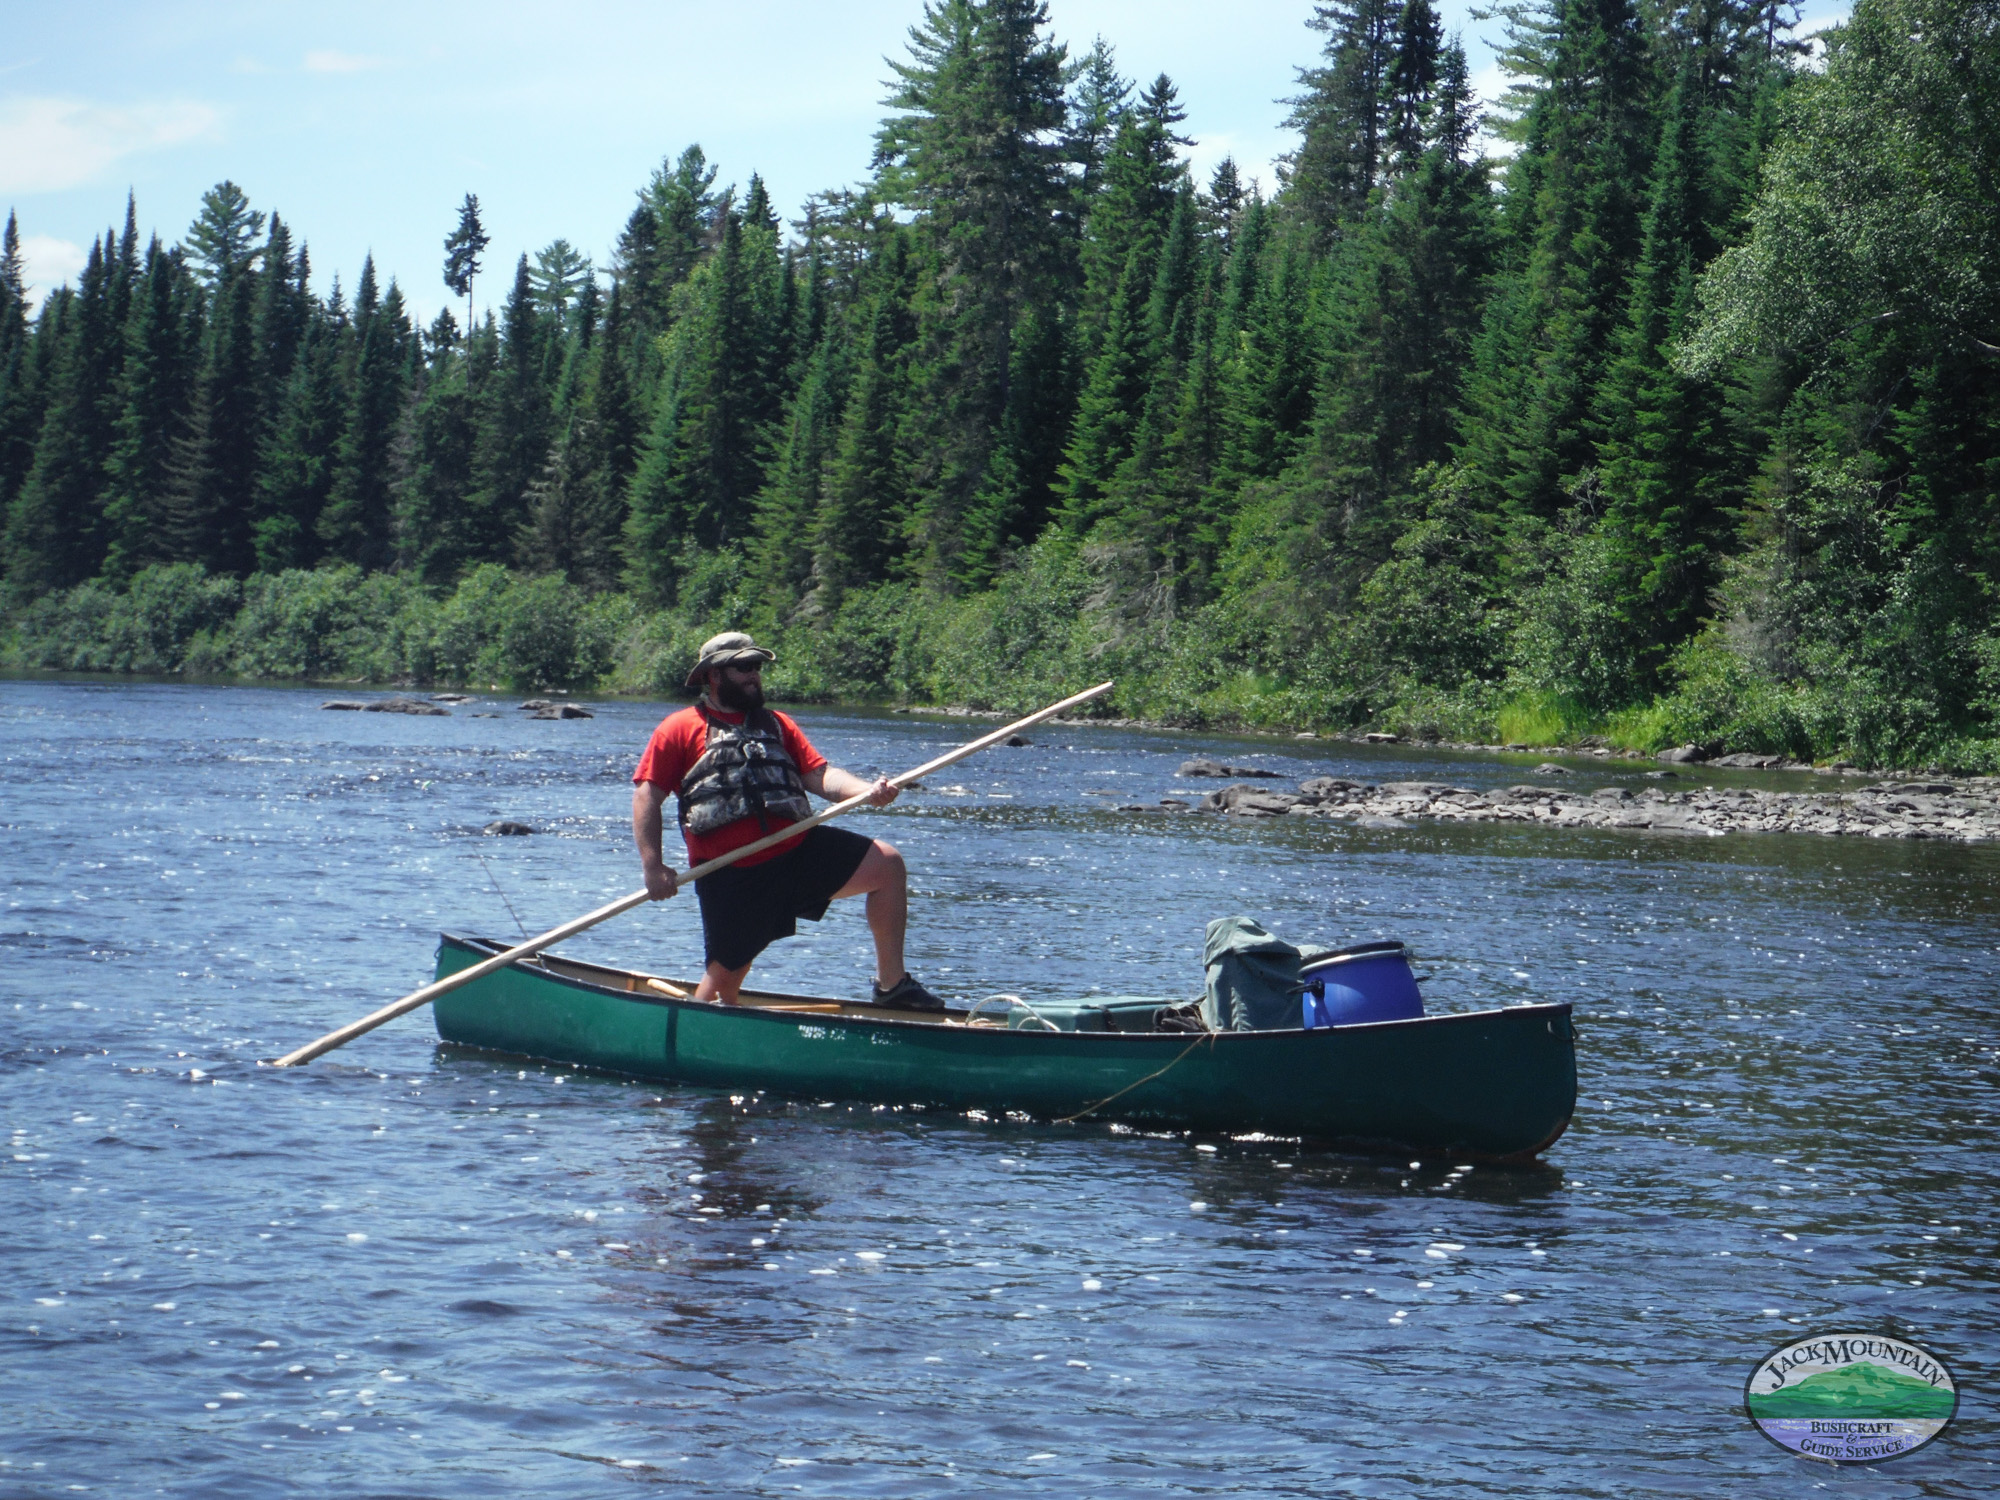 Recommended Kit For Dry Storage On Canoe Trips